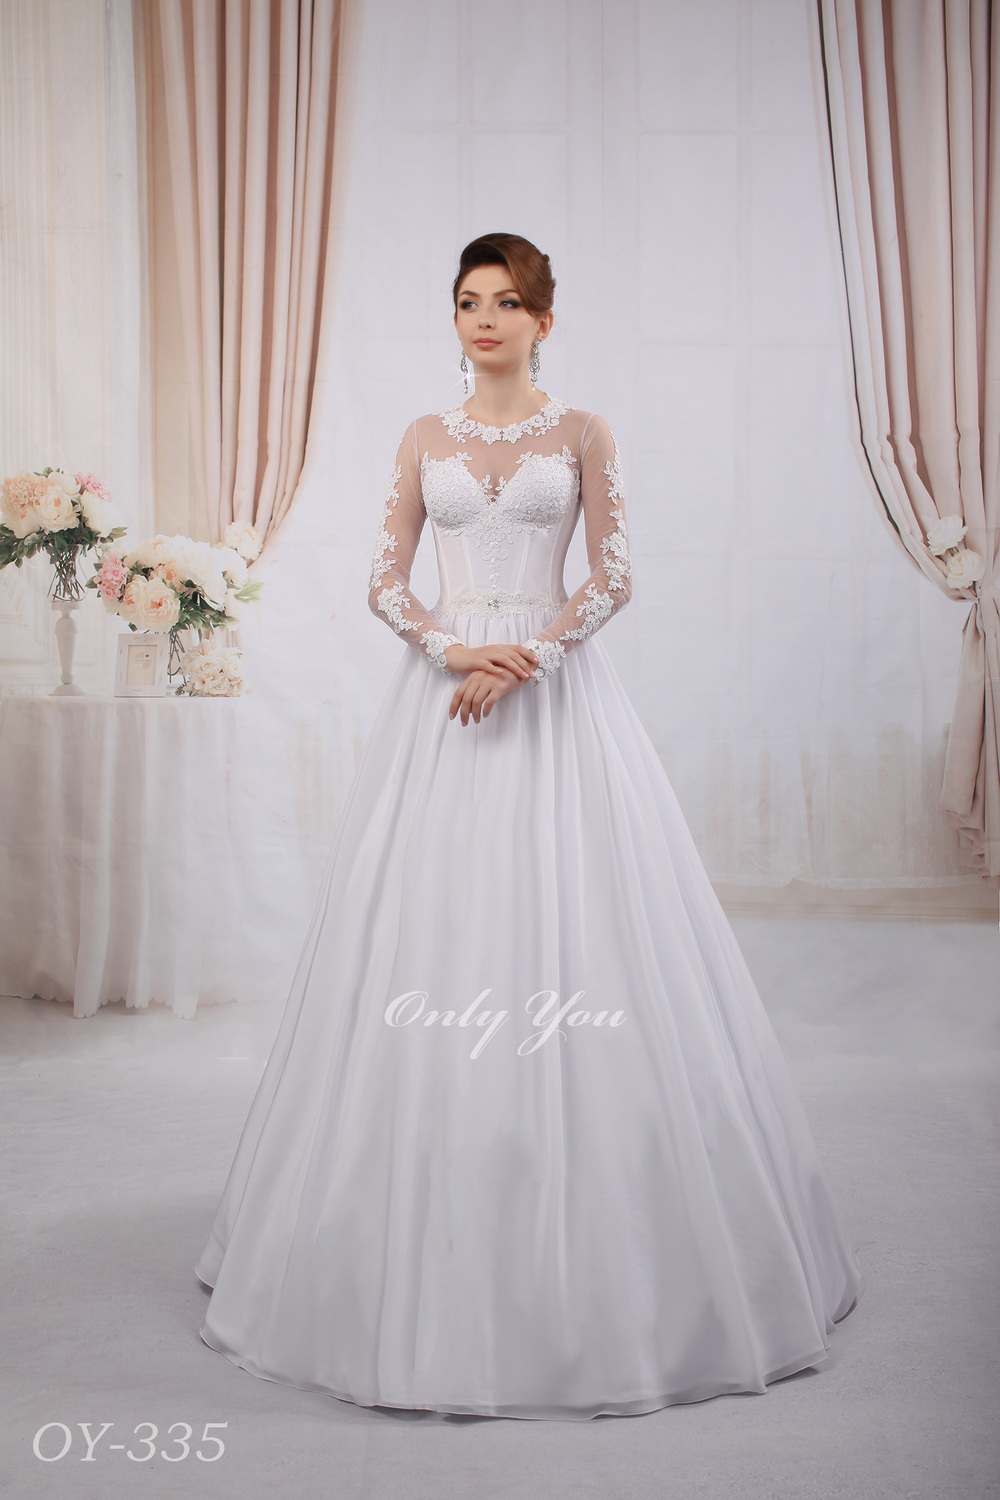 Perfect Wedding Dress Silk Ball Gown Skirt Beaded Lace Closed Back Pearl Ons Long Sleeves Plus